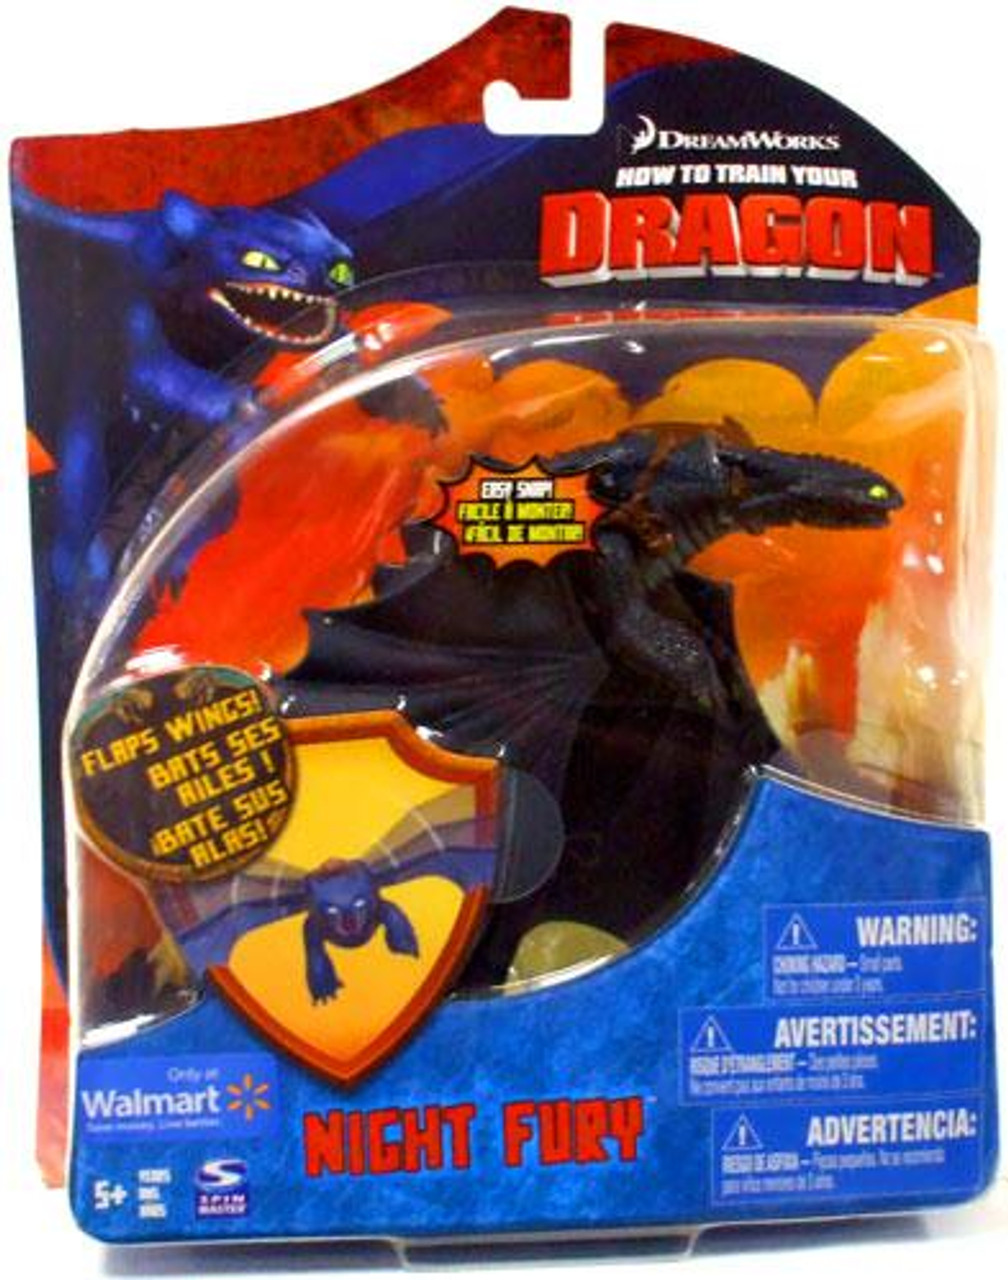 How to train your dragon series 2 deluxe night fury exclusive 7 how to train your dragon series 2 deluxe night fury exclusive 7 action figure toothless spin master toywiz ccuart Image collections